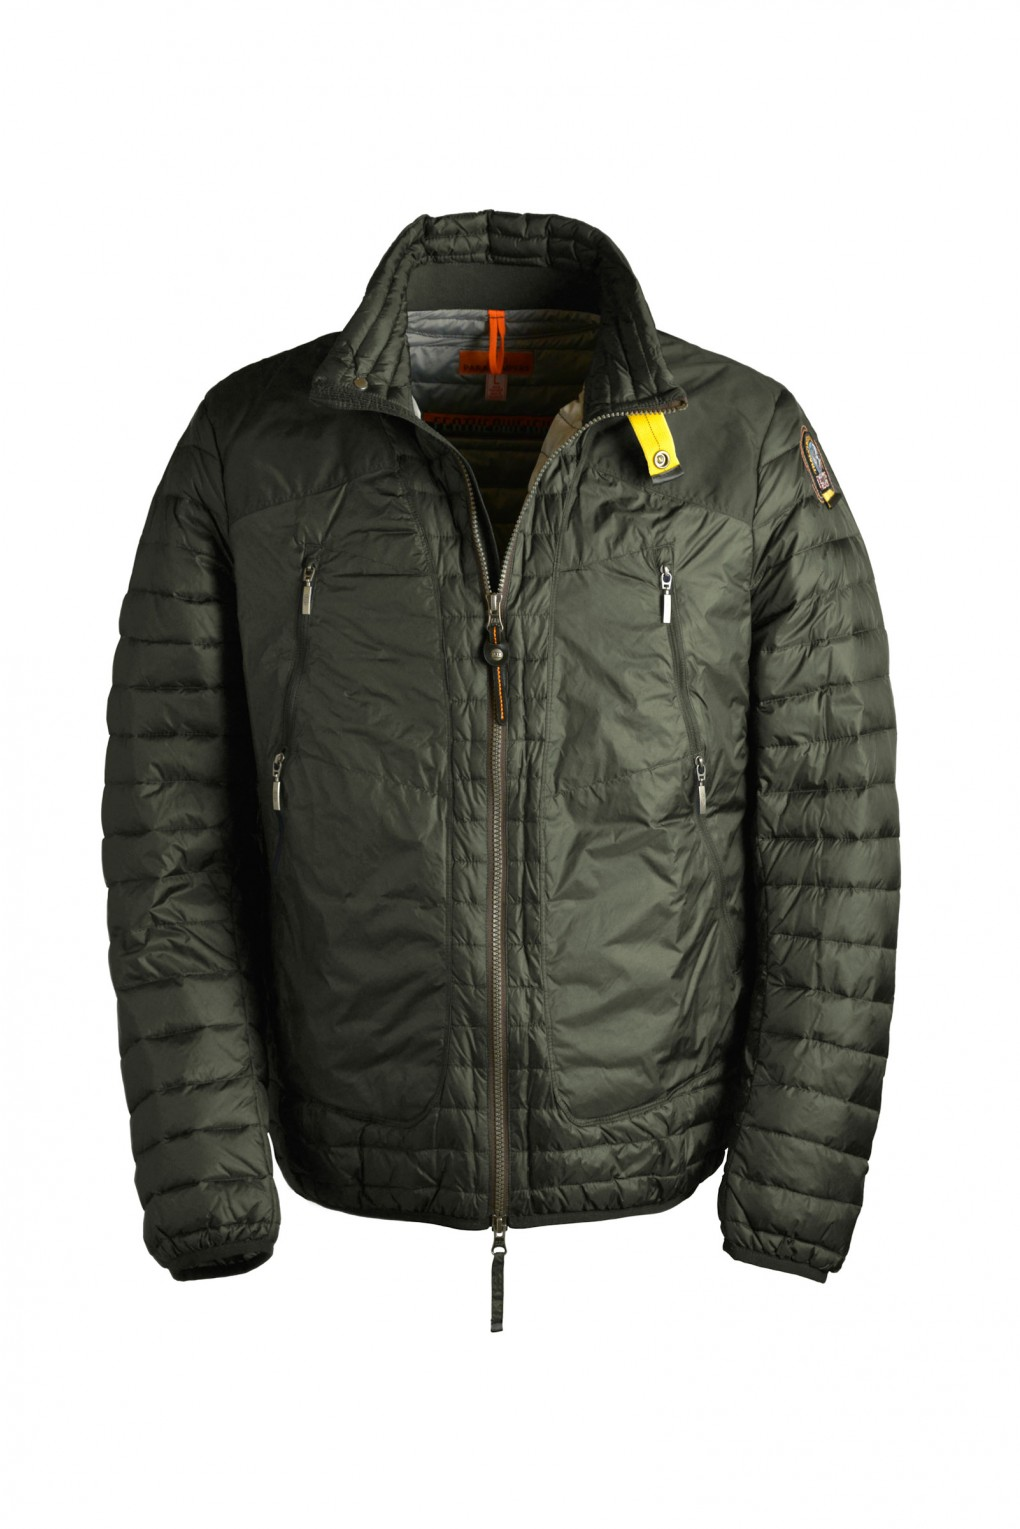 parajumpers GIULY man outerwear Army